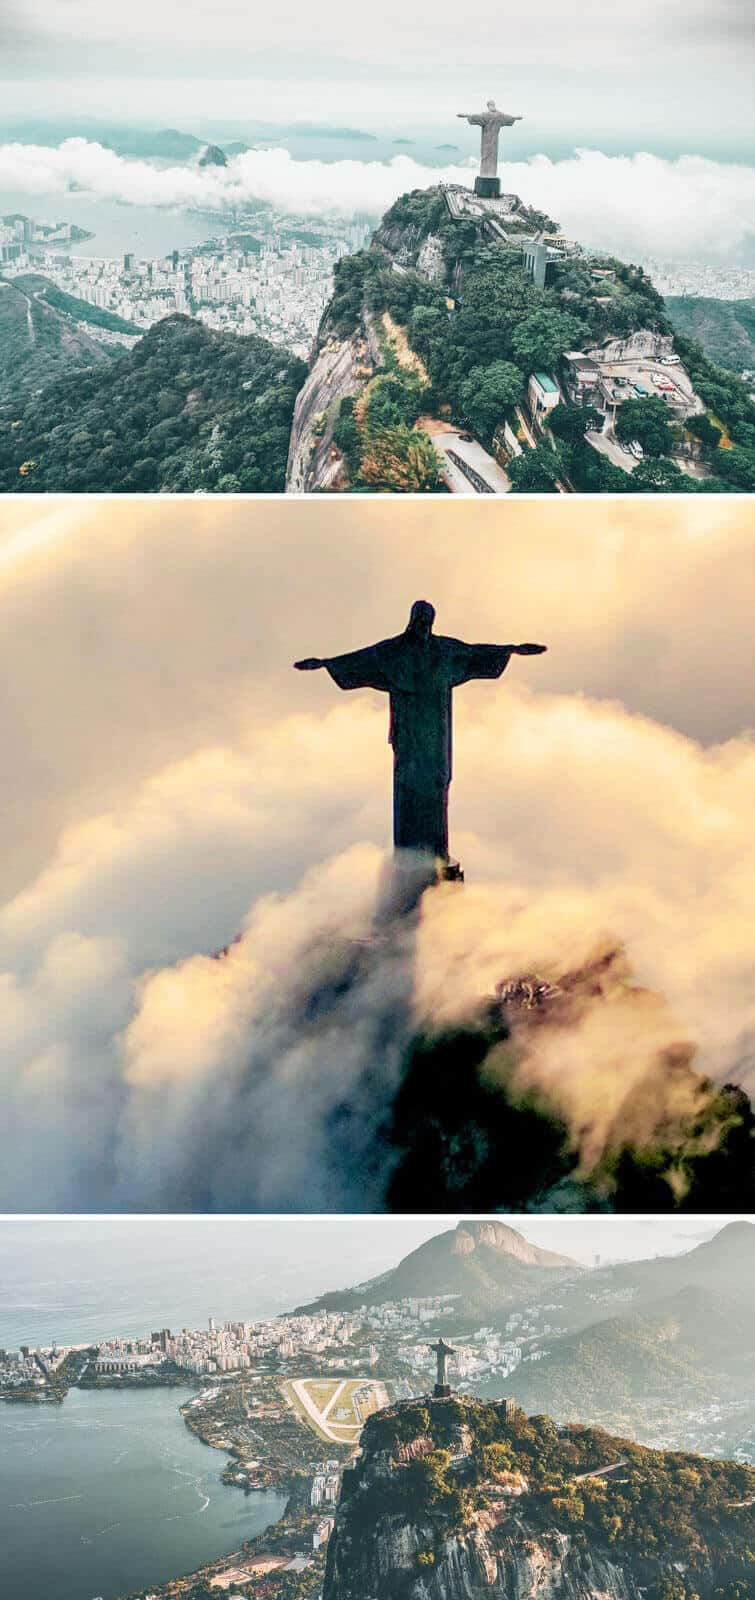 Corcovado (Cristo Redentor – Christ the Redeemer Statue)